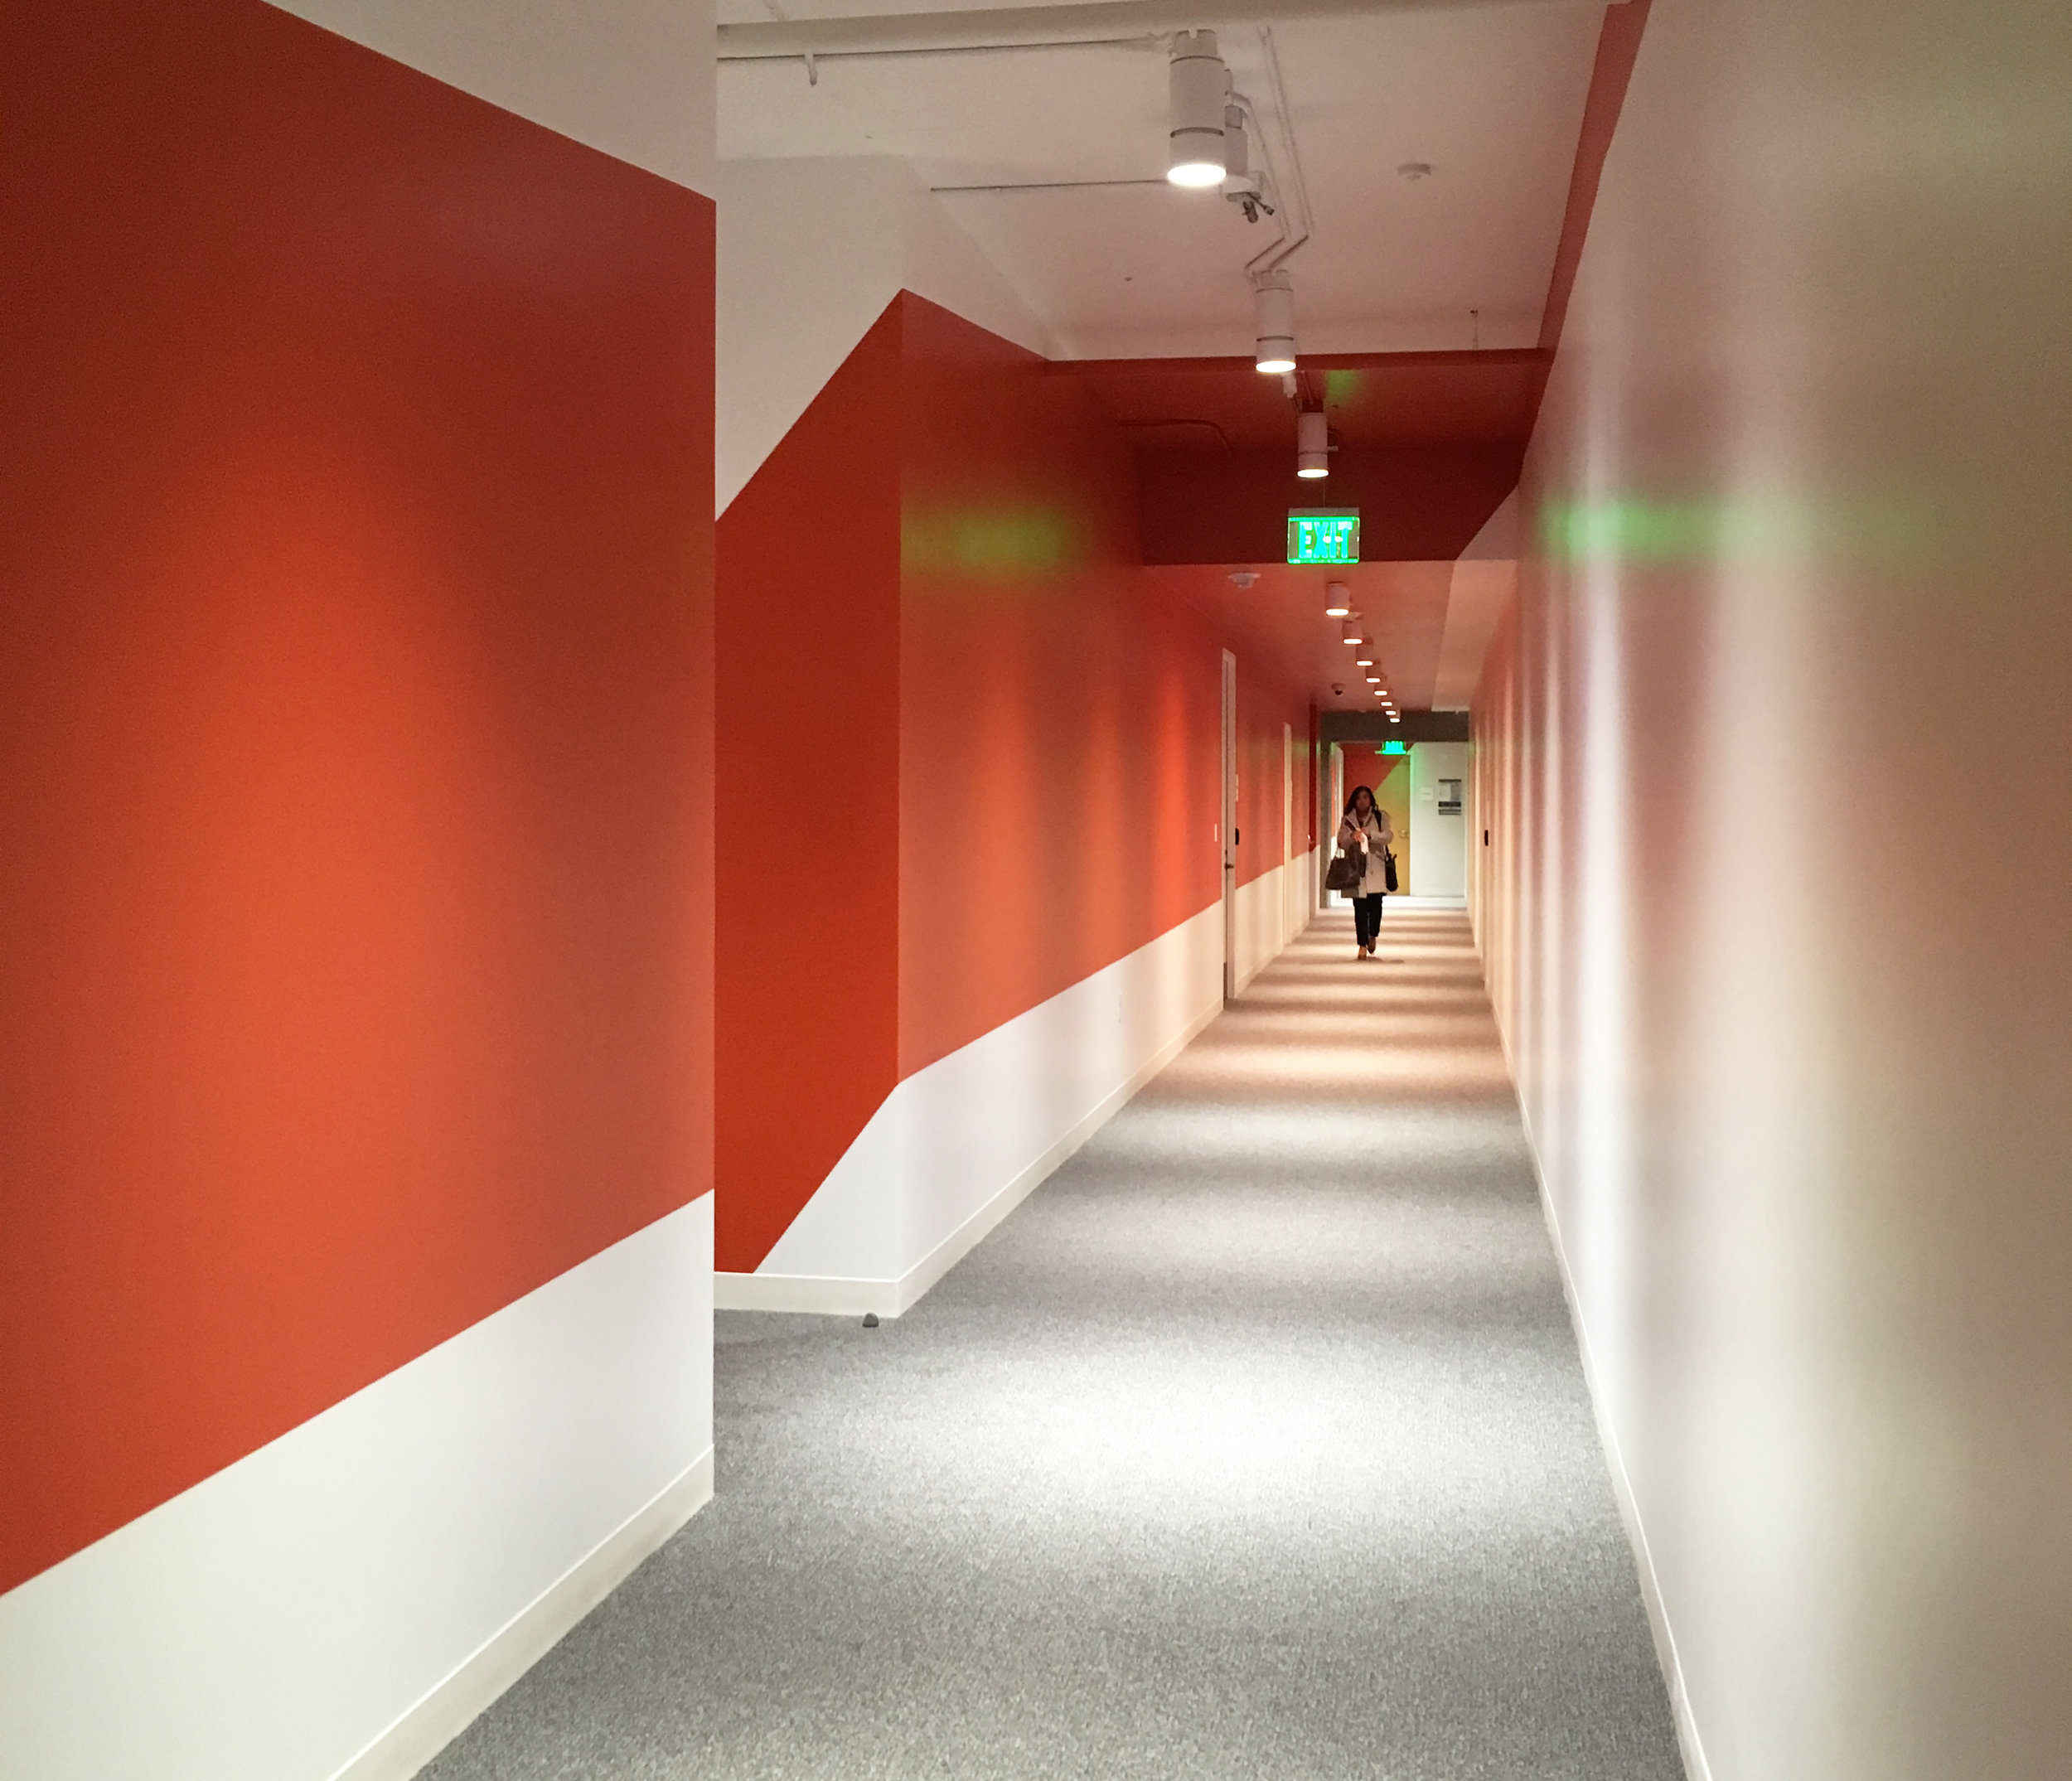 Office-commercial-mural-san-francisco-brex-wall-and-wall-mural-company.jpg